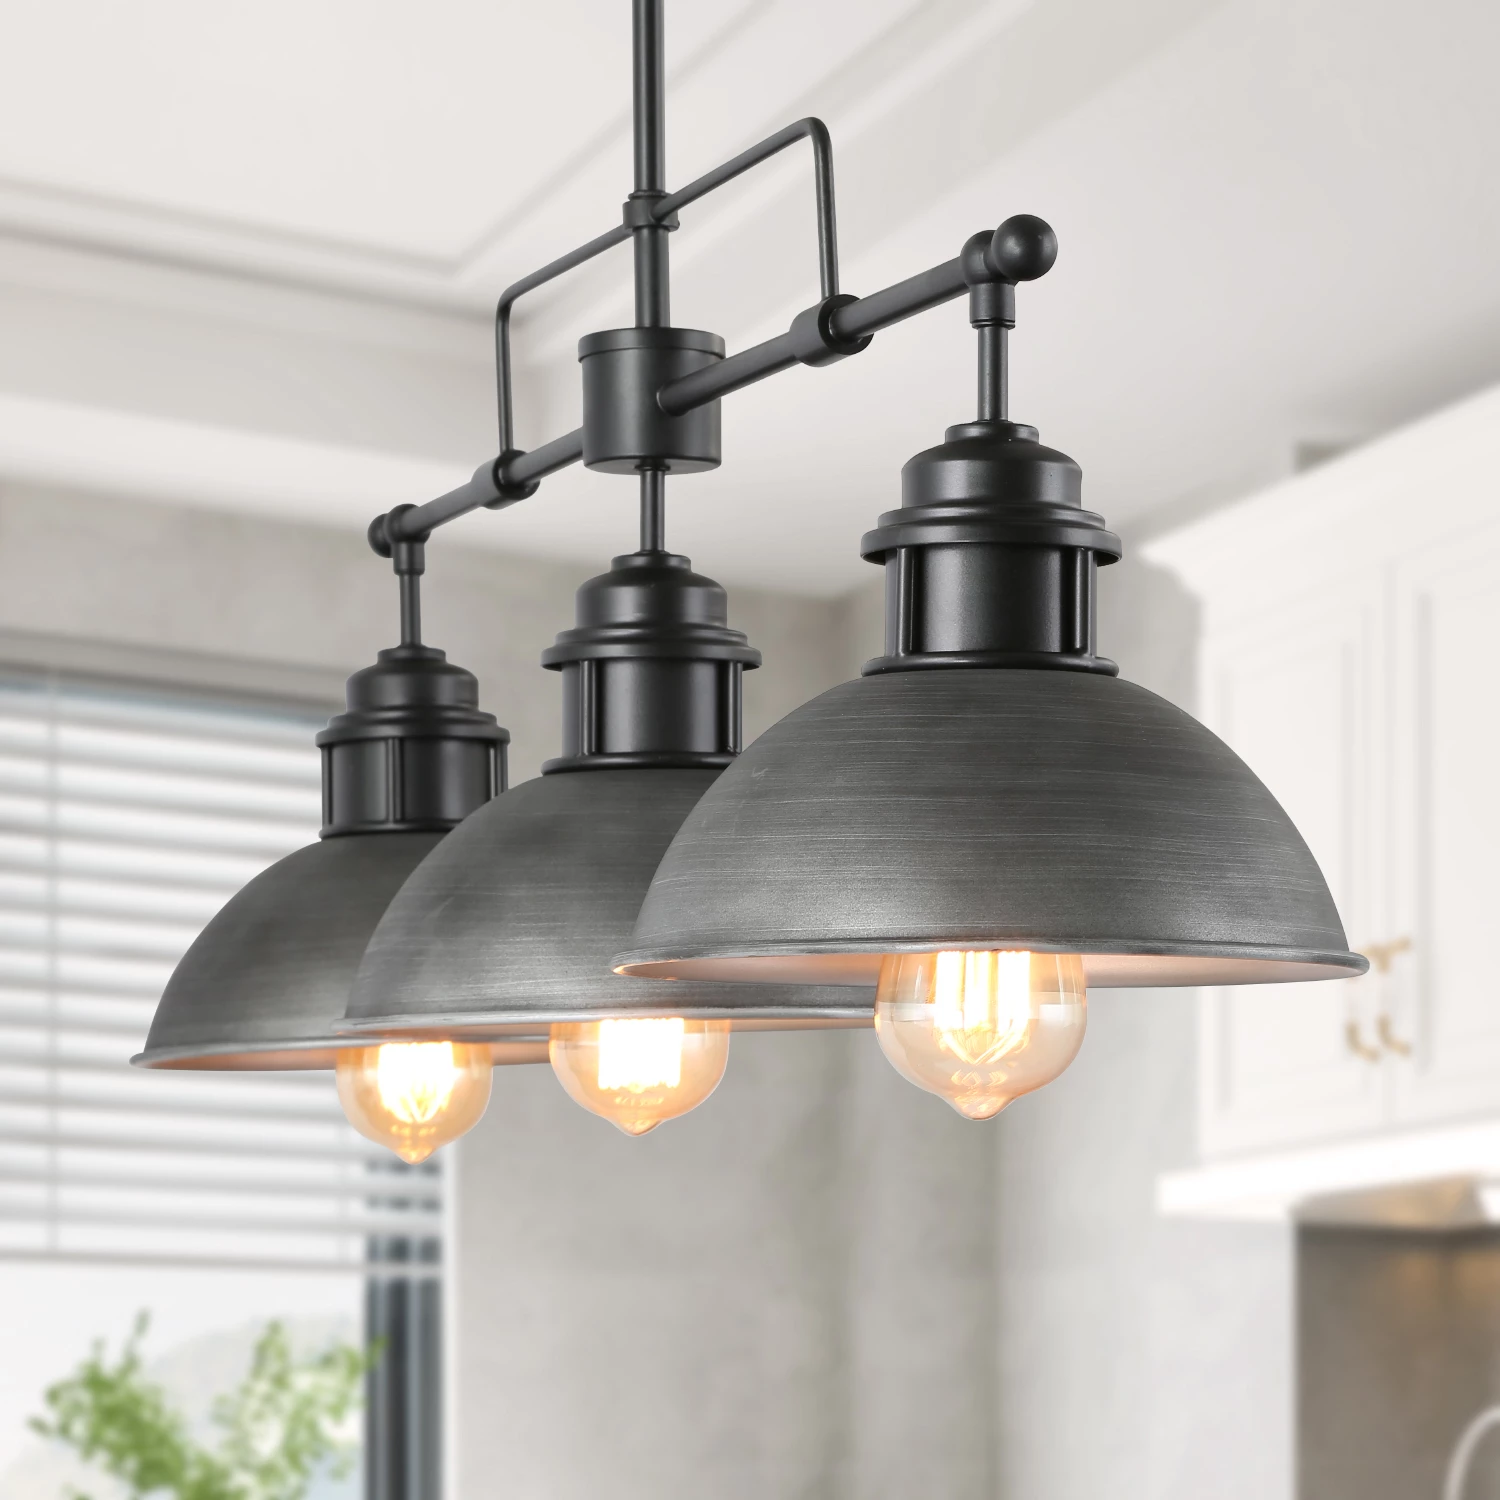 Lnc Island Lights Antique Silver Brushed Metal Finish Chandeliers 3 Li In 2020 Industrial Pendant Lighting Kitchen Industrial Kitchen Lighting Kitchen Pendant Lighting